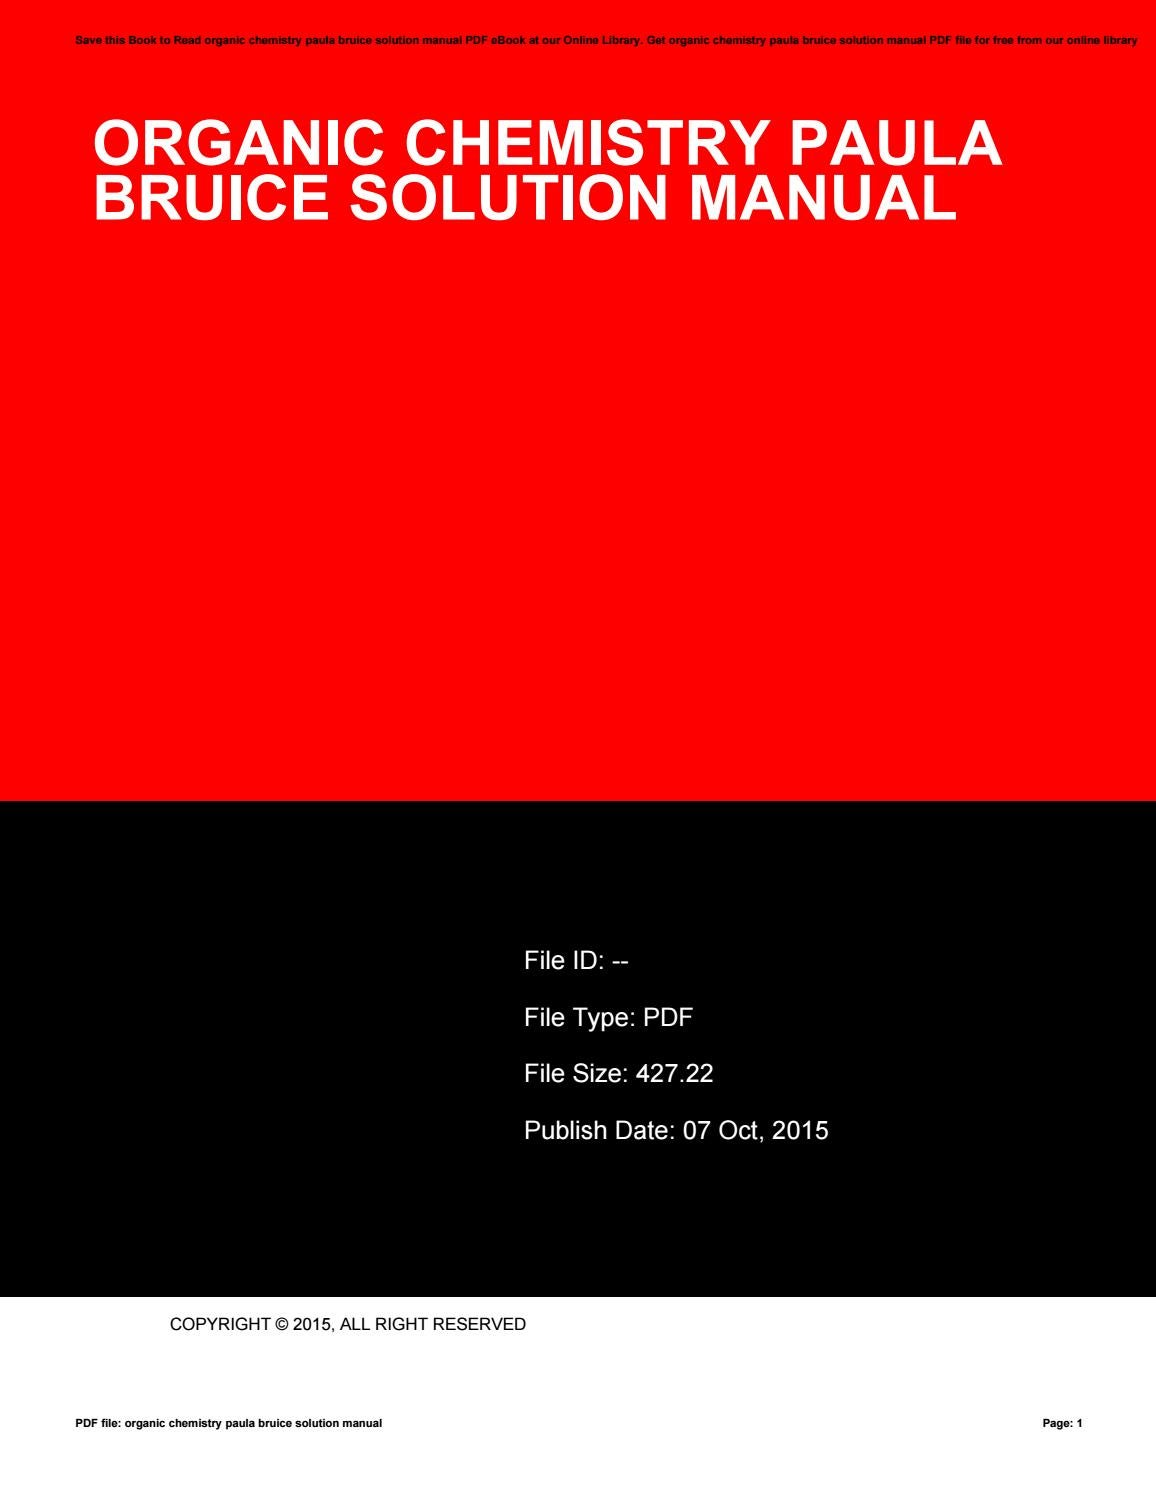 Organic Chemistry Paula Bruice Solution Manual By Ileanaraymond3971